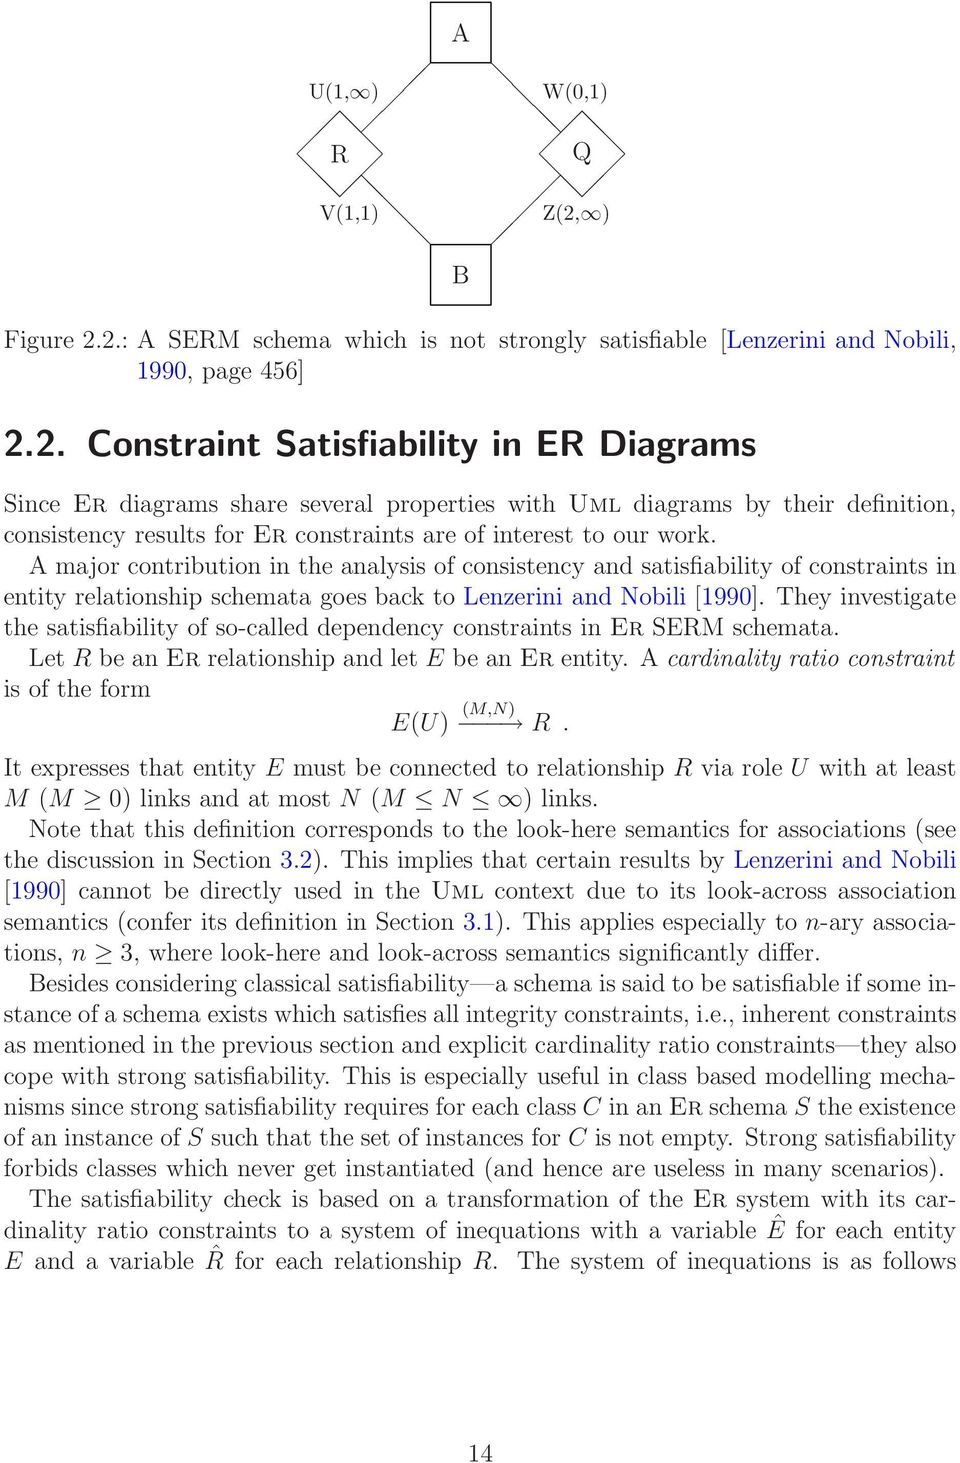 2.: A SERM schema which is not strongly satisfiable [Lenzerini and Nobili, 1990, page 456] 2.2. Constraint Satisfiability in ER Diagrams Since Er diagrams share several properties with Uml diagrams by their definition, consistency results for Er constraints are of interest to our work.